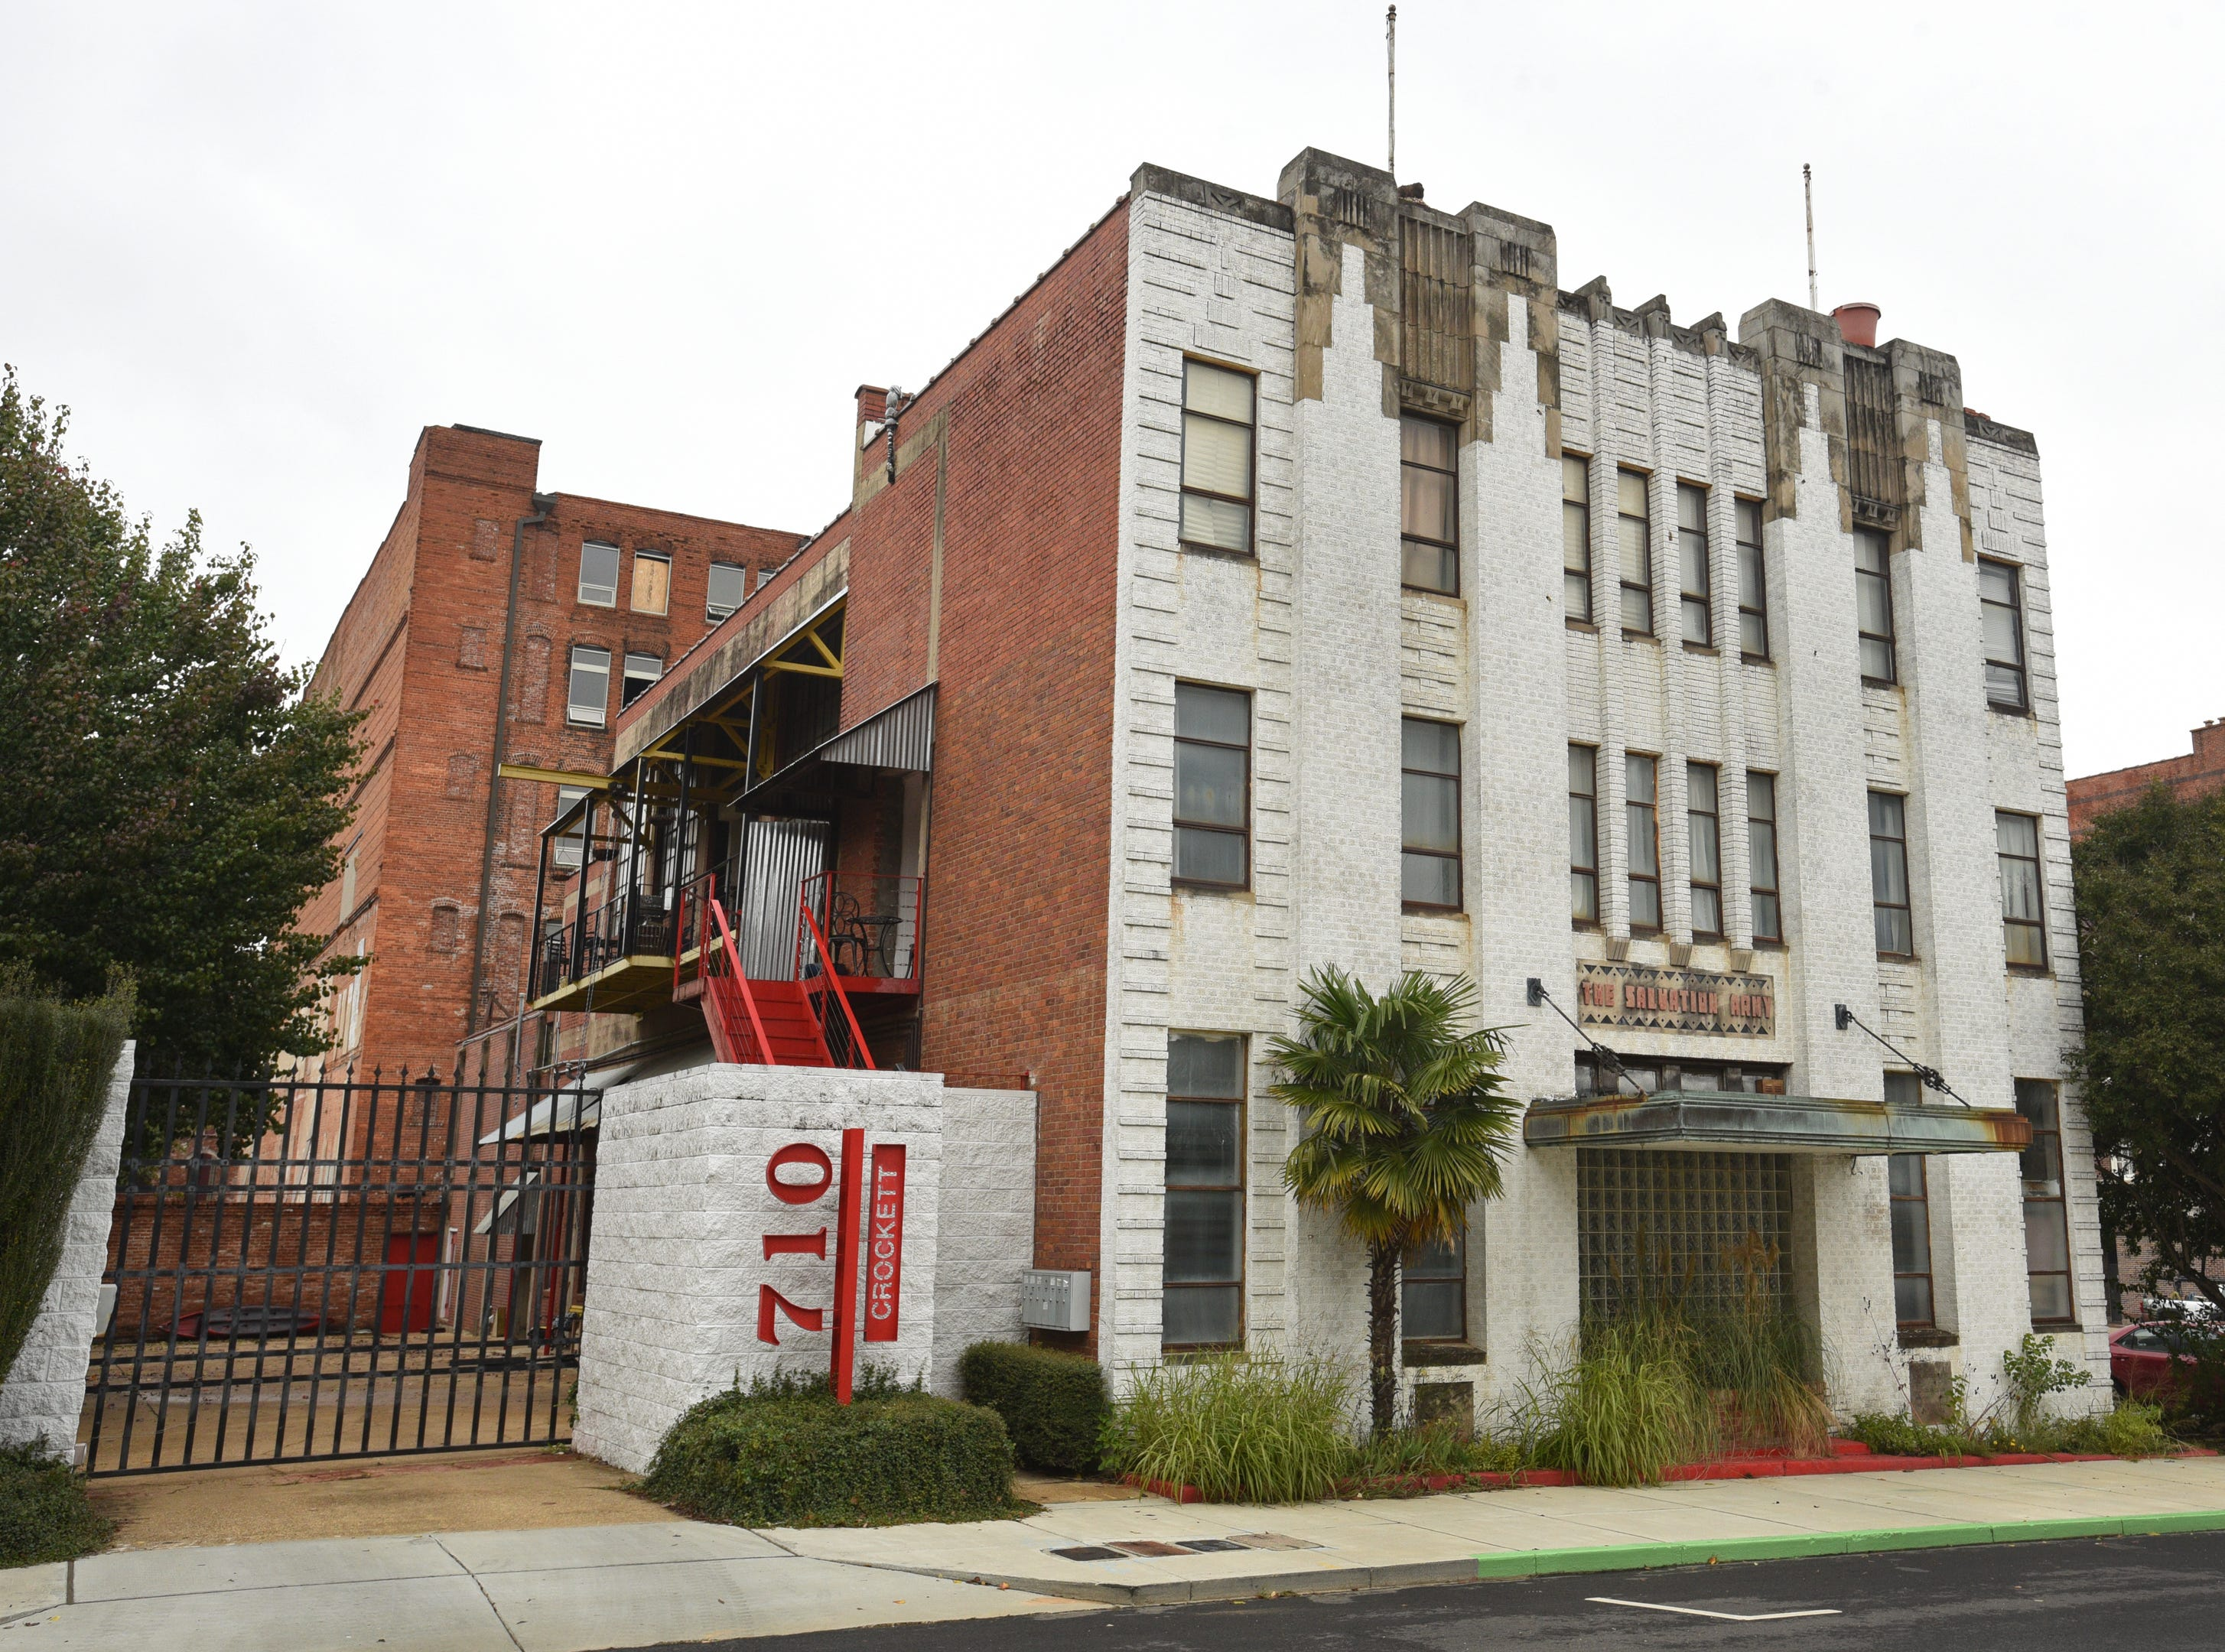 710 Crockett Lofts in Shreveport.